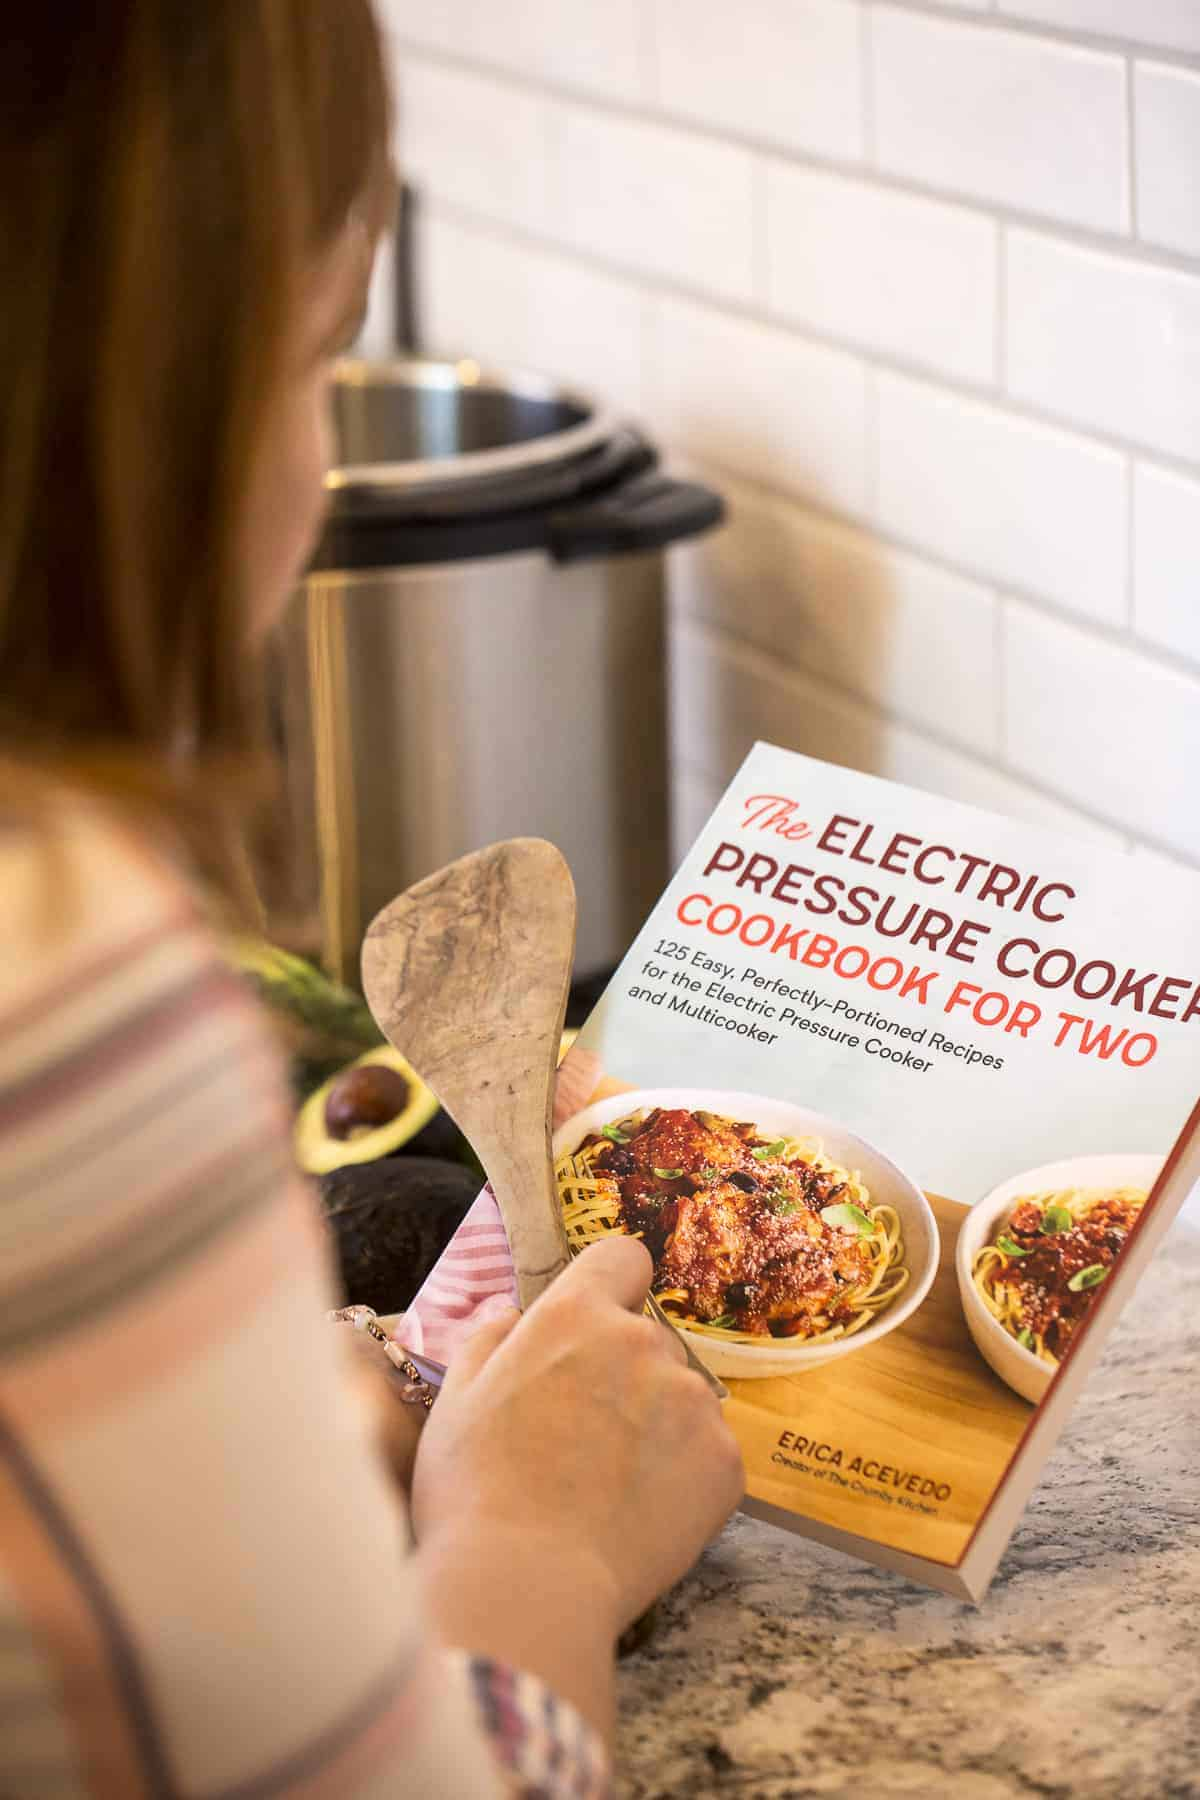 The Electric Pressure Cooker Cookbook For Two is Here!